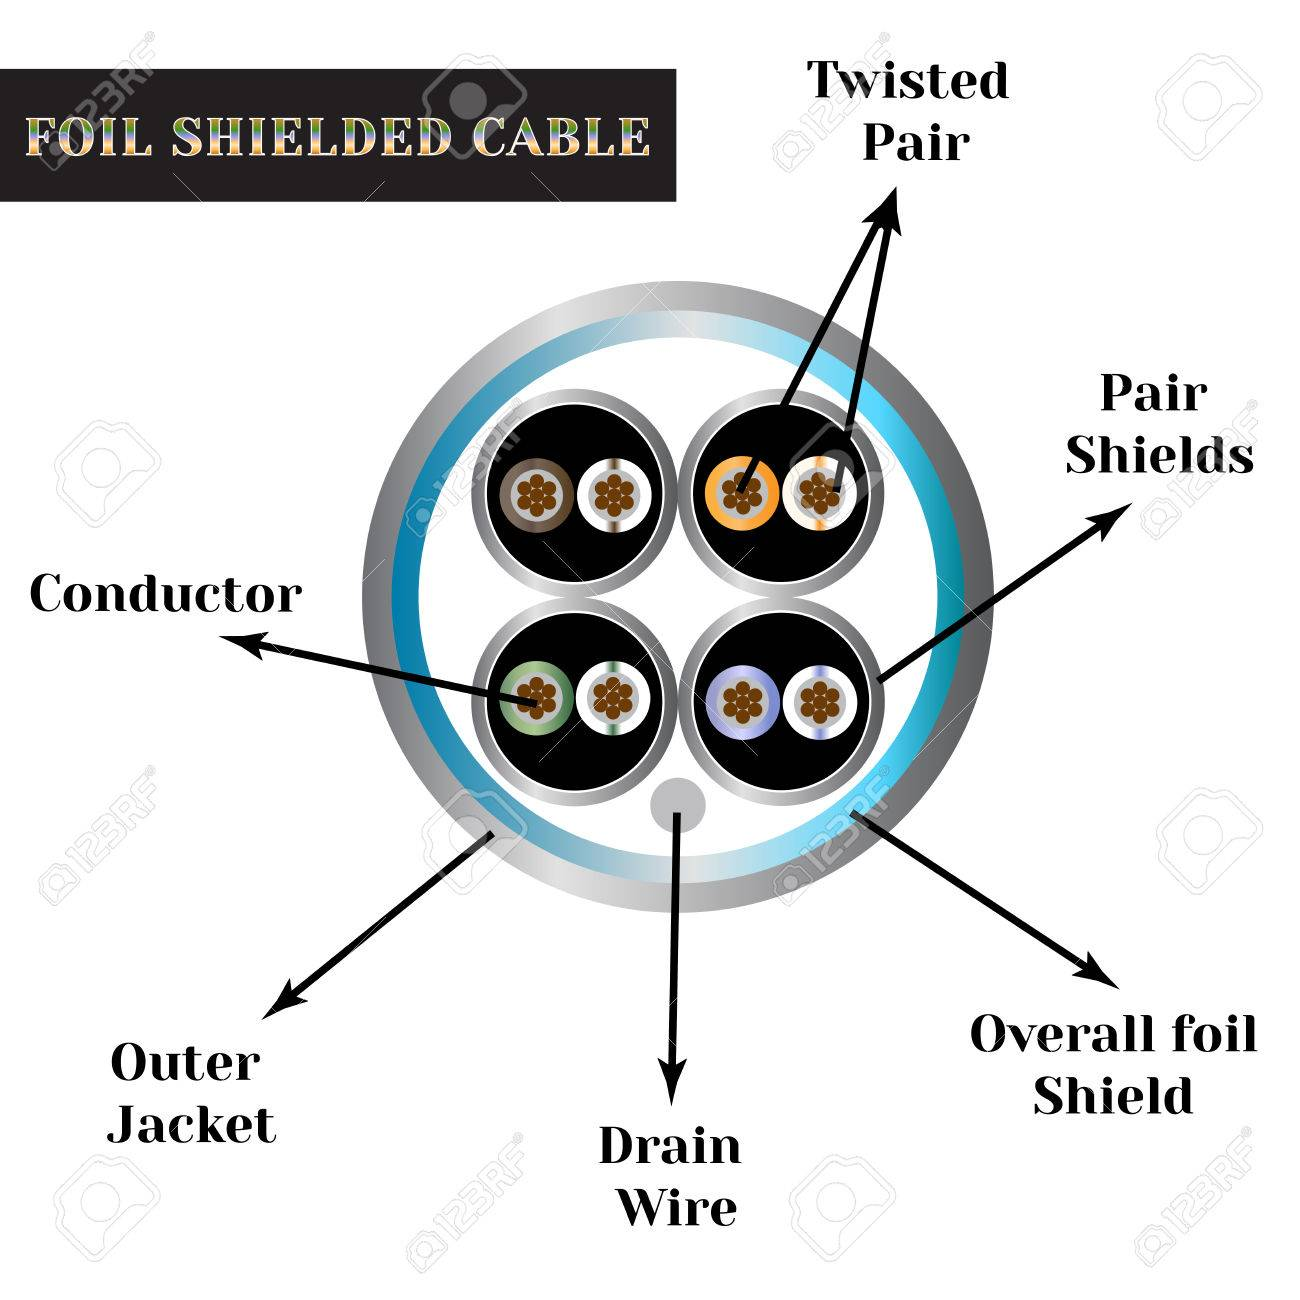 Twisted-pair Cable With Symbols. Foil Shielded Cable. Royalty Free ...